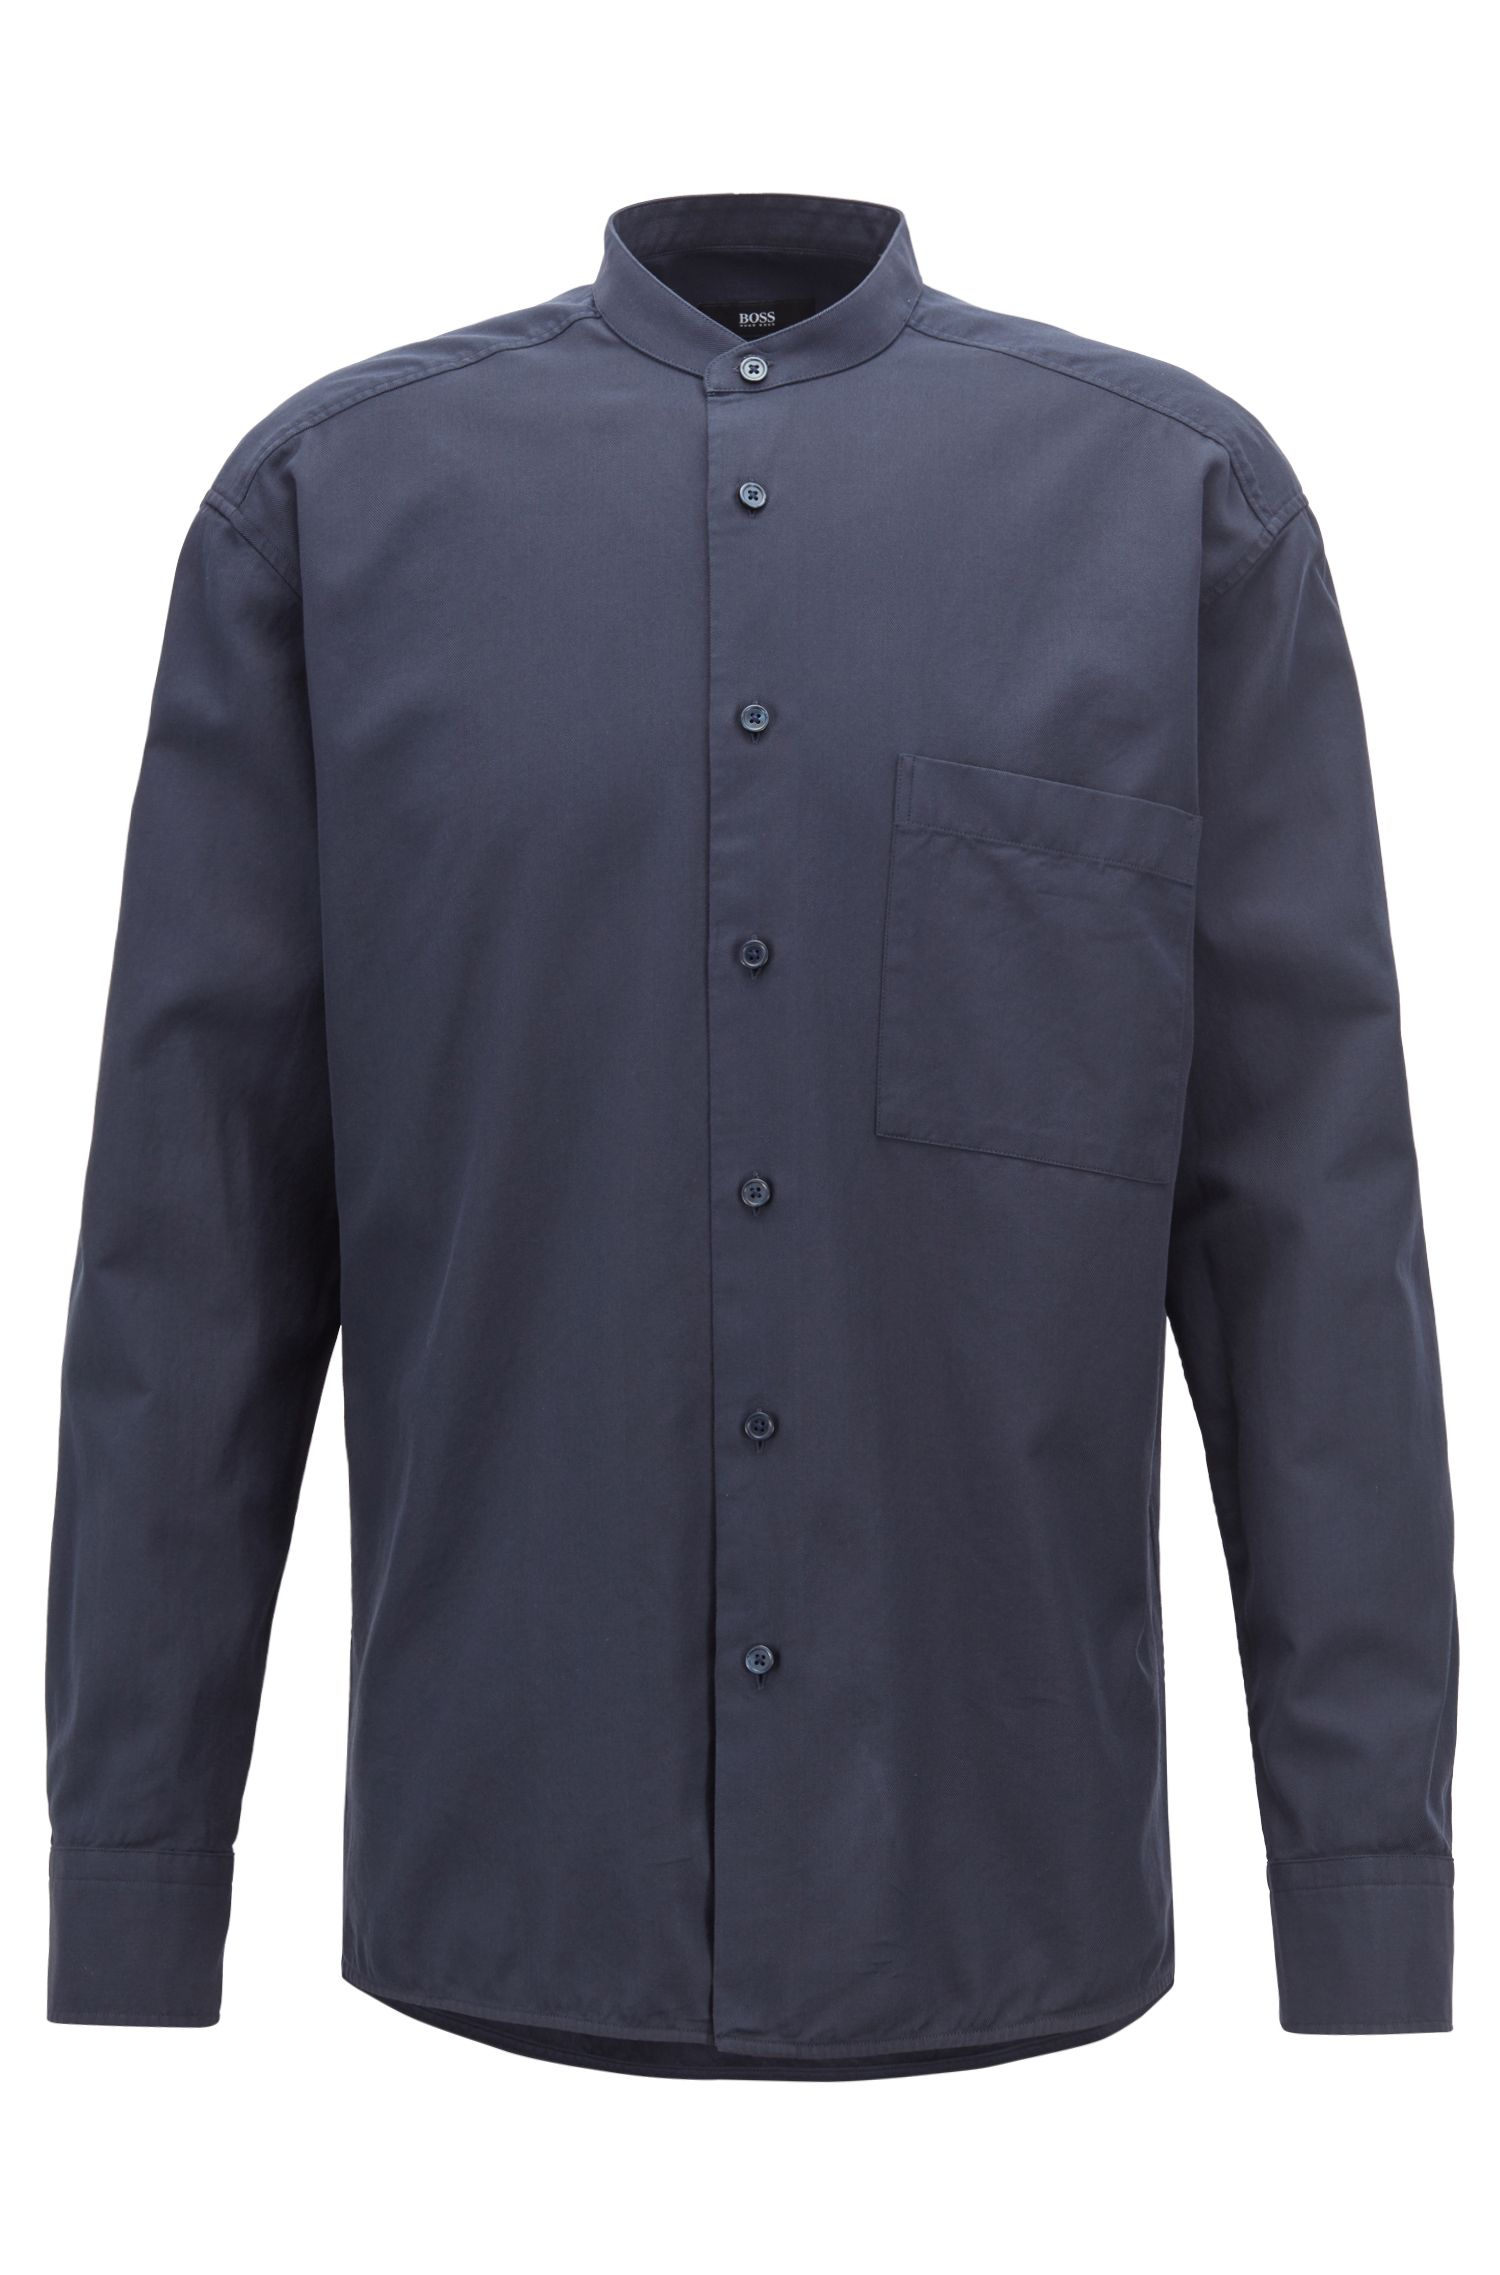 Relaxed-fit shirt in cotton twill with stand collar